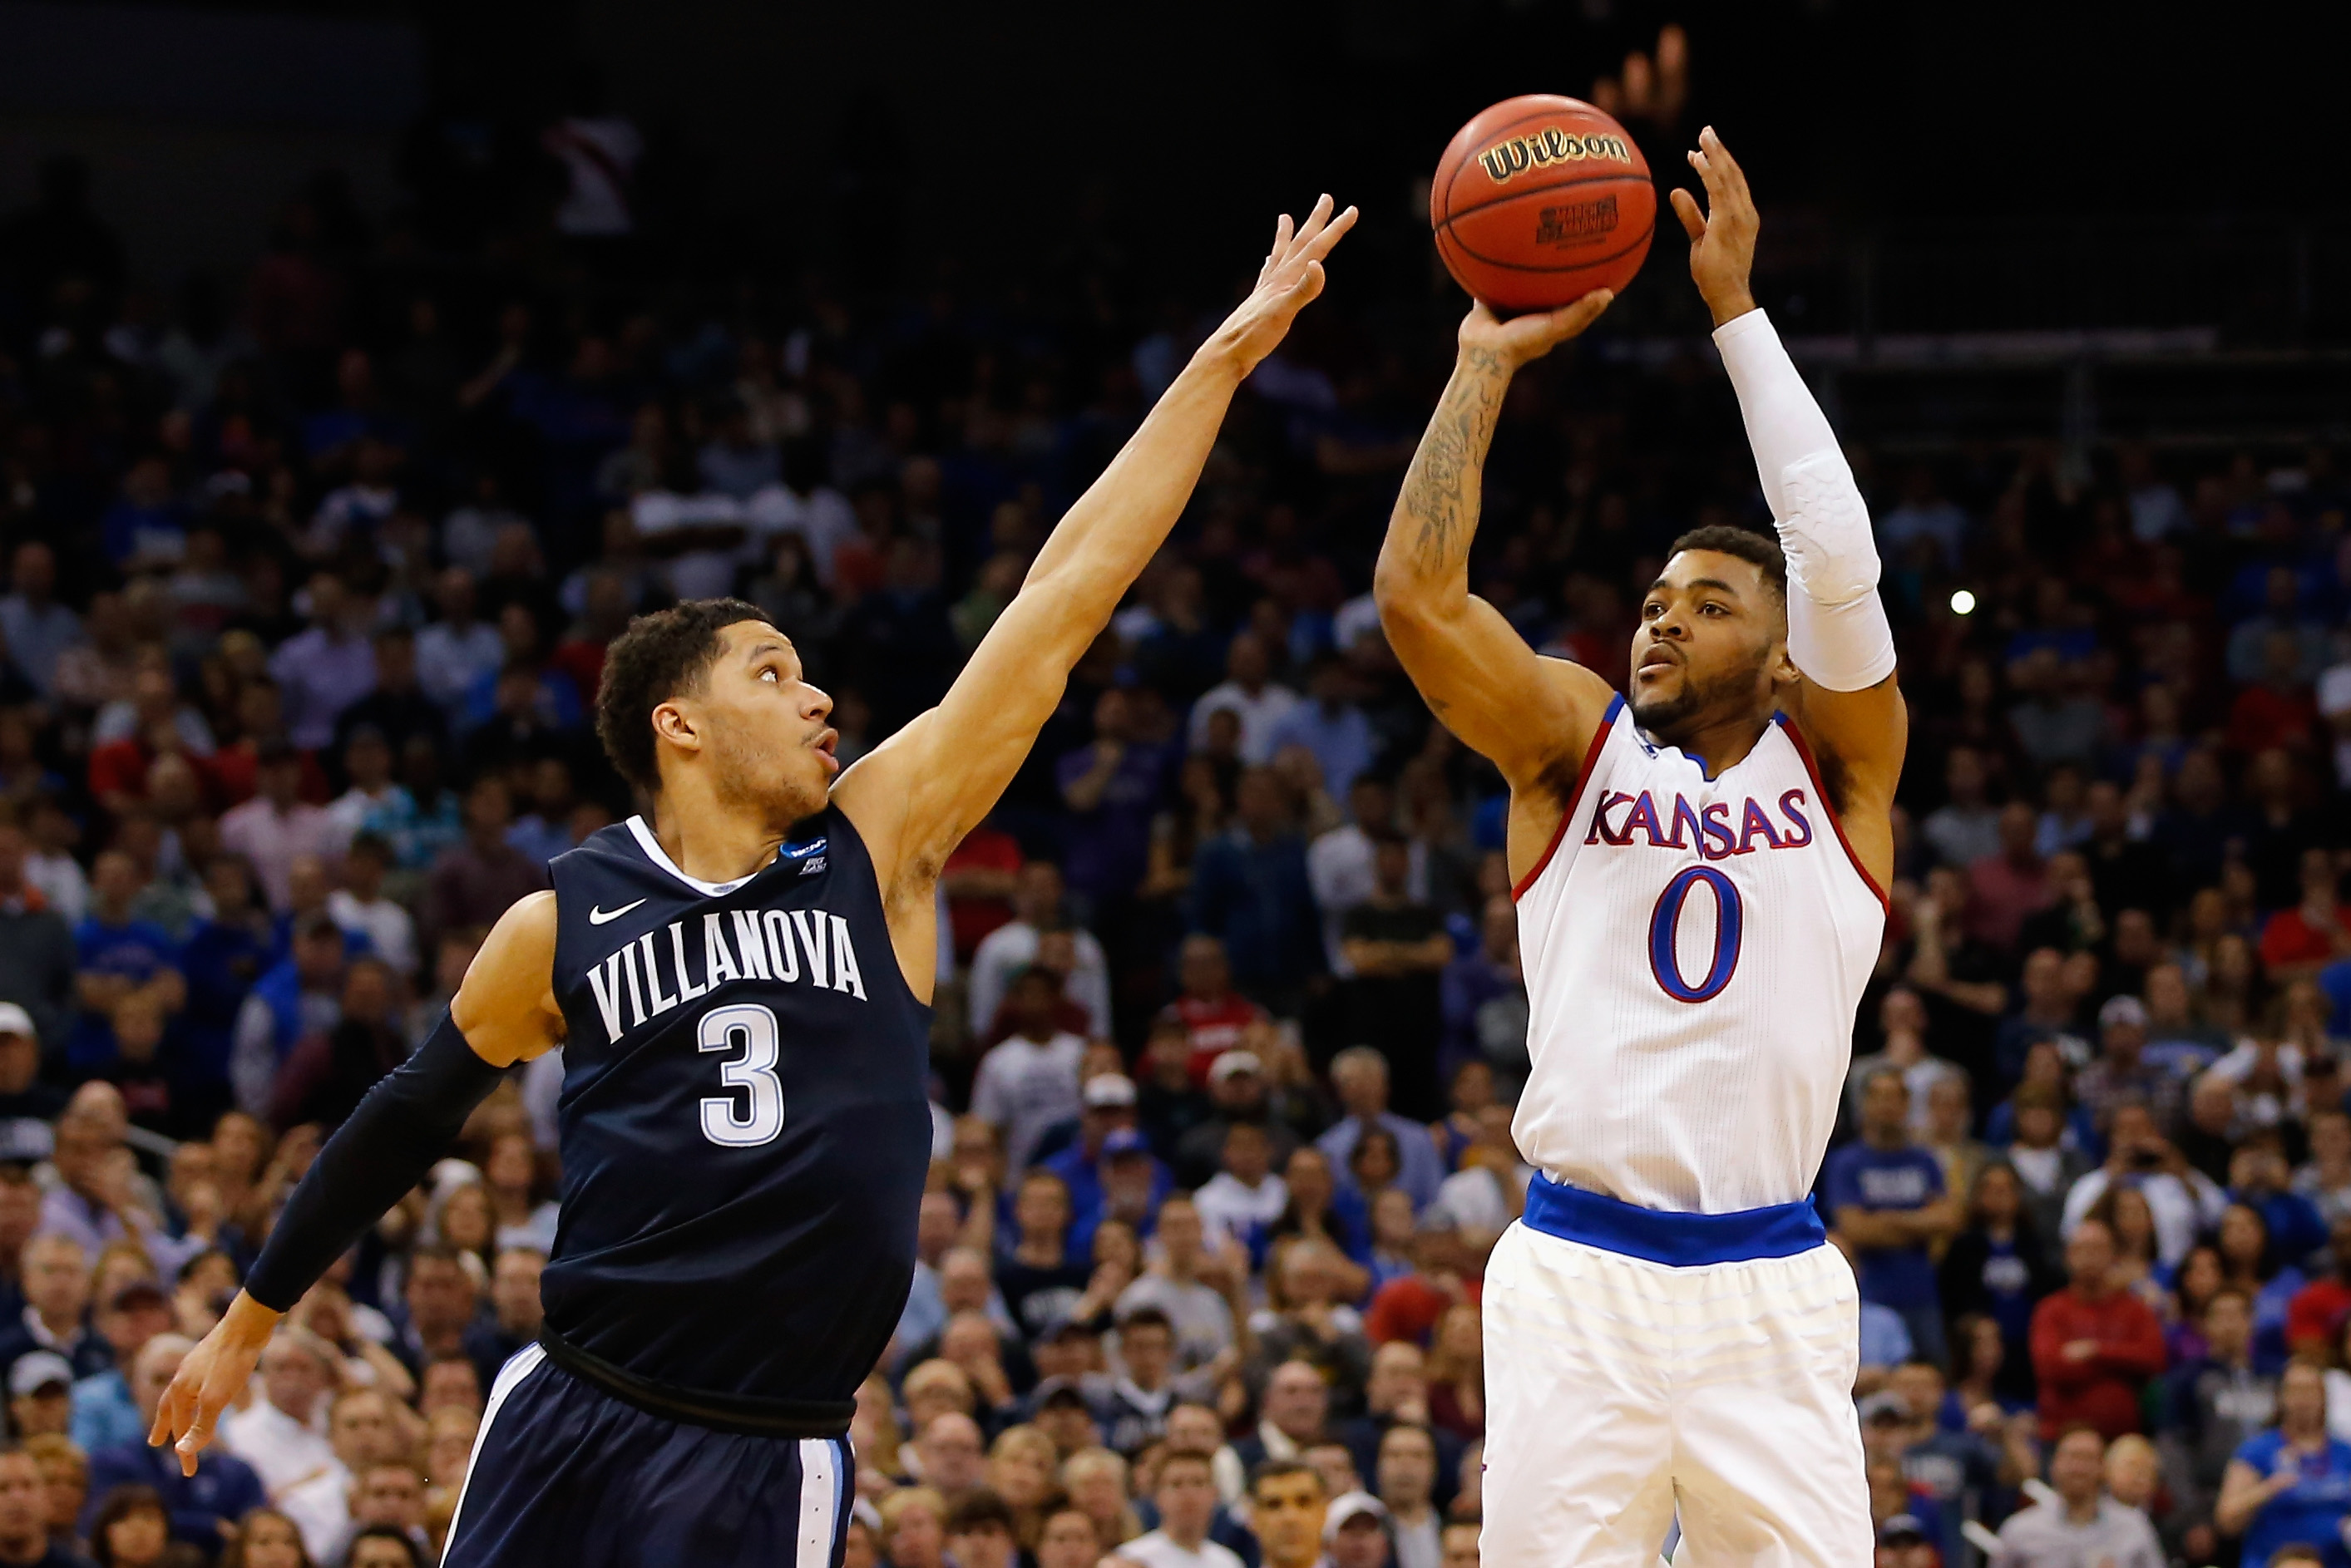 LOUISVILLE, KY - MARCH 26: Frank Mason III #0 of the Kansas Jayhawks shoots the ball against Josh Hart #3 of the Villanova Wildcats in the second half during the 2016 NCAA Men's Basketball Tournament South Regional at KFC YUM! Center on March 26, 2016 in Louisville, Kentucky. (Photo by Kevin C. Cox/Getty Images)